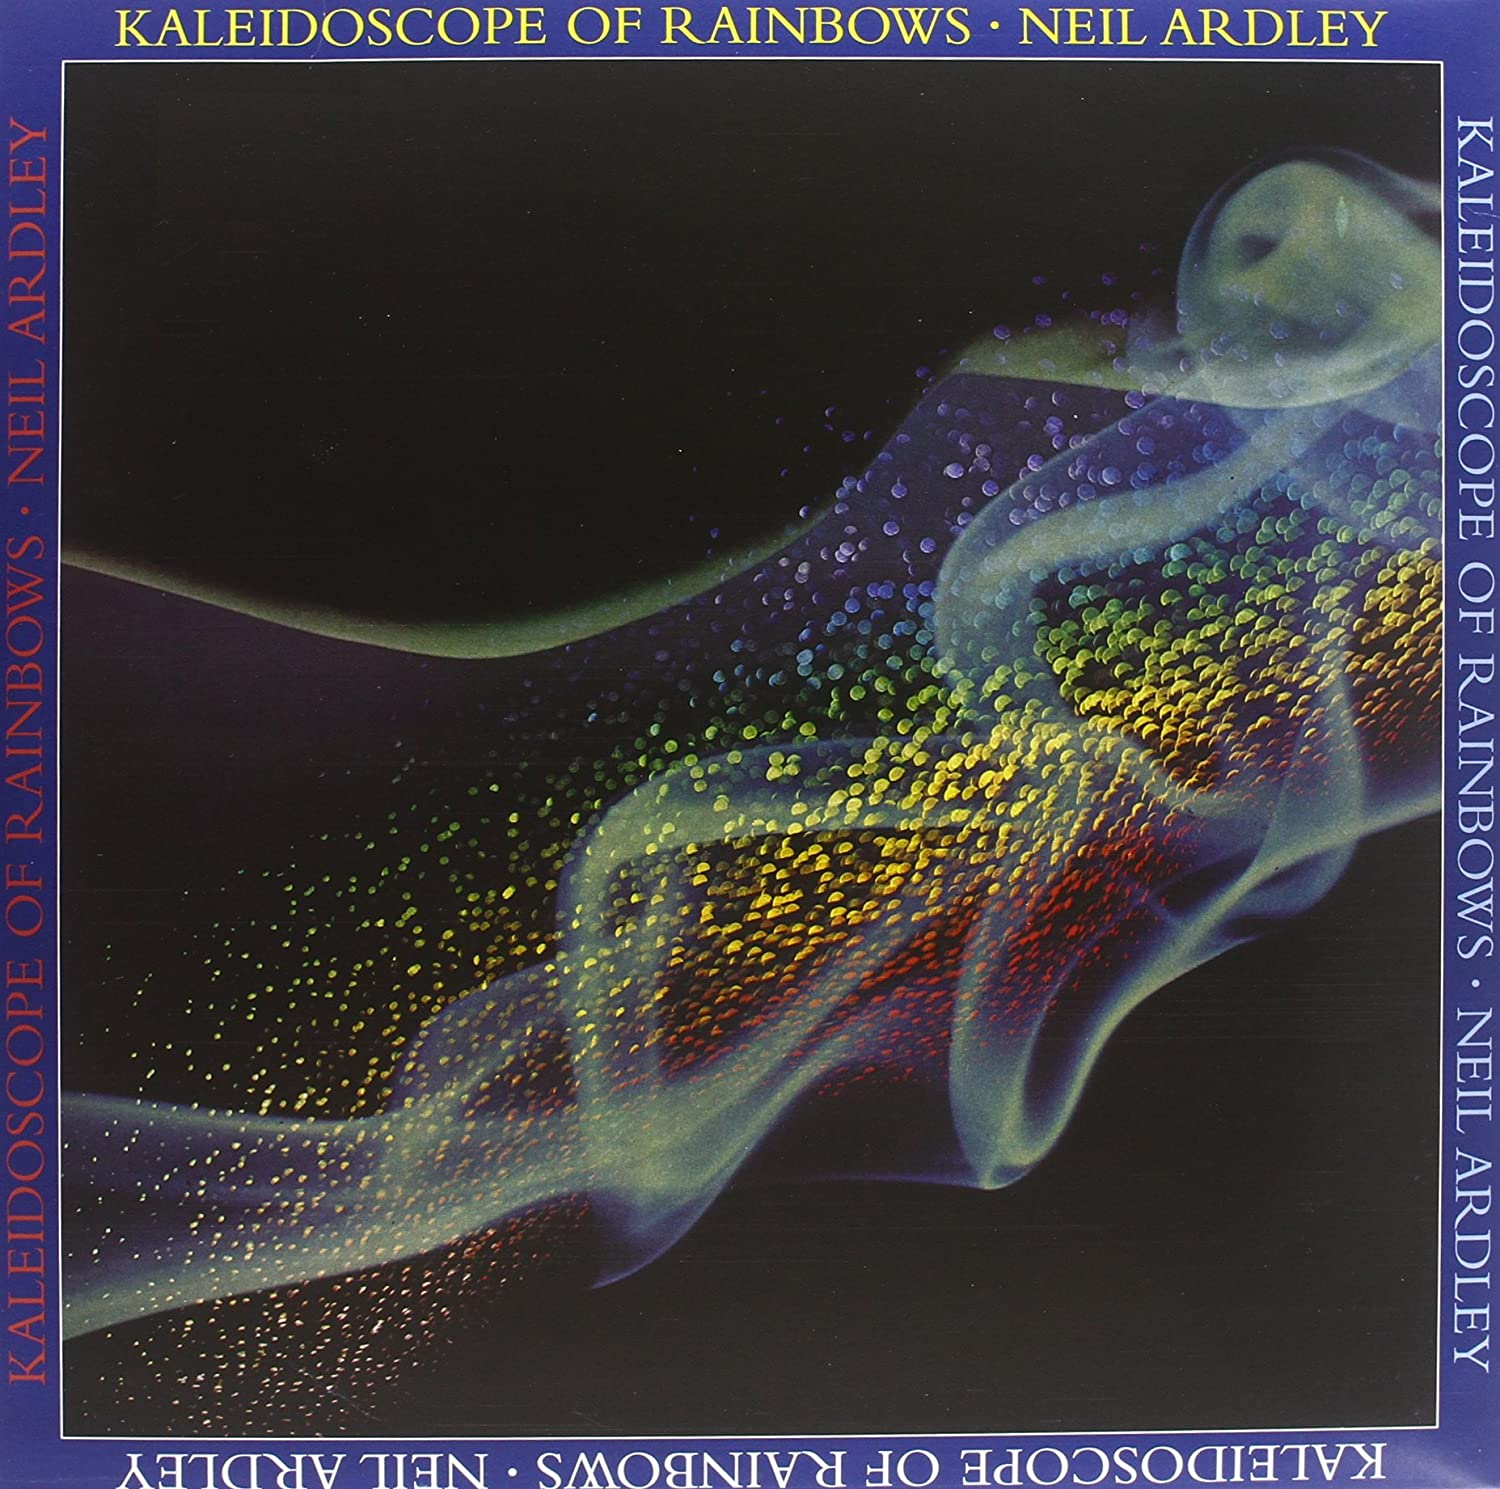 Kaleidoscope of Limited Special Price Rainbows Vinyl Large discharge sale